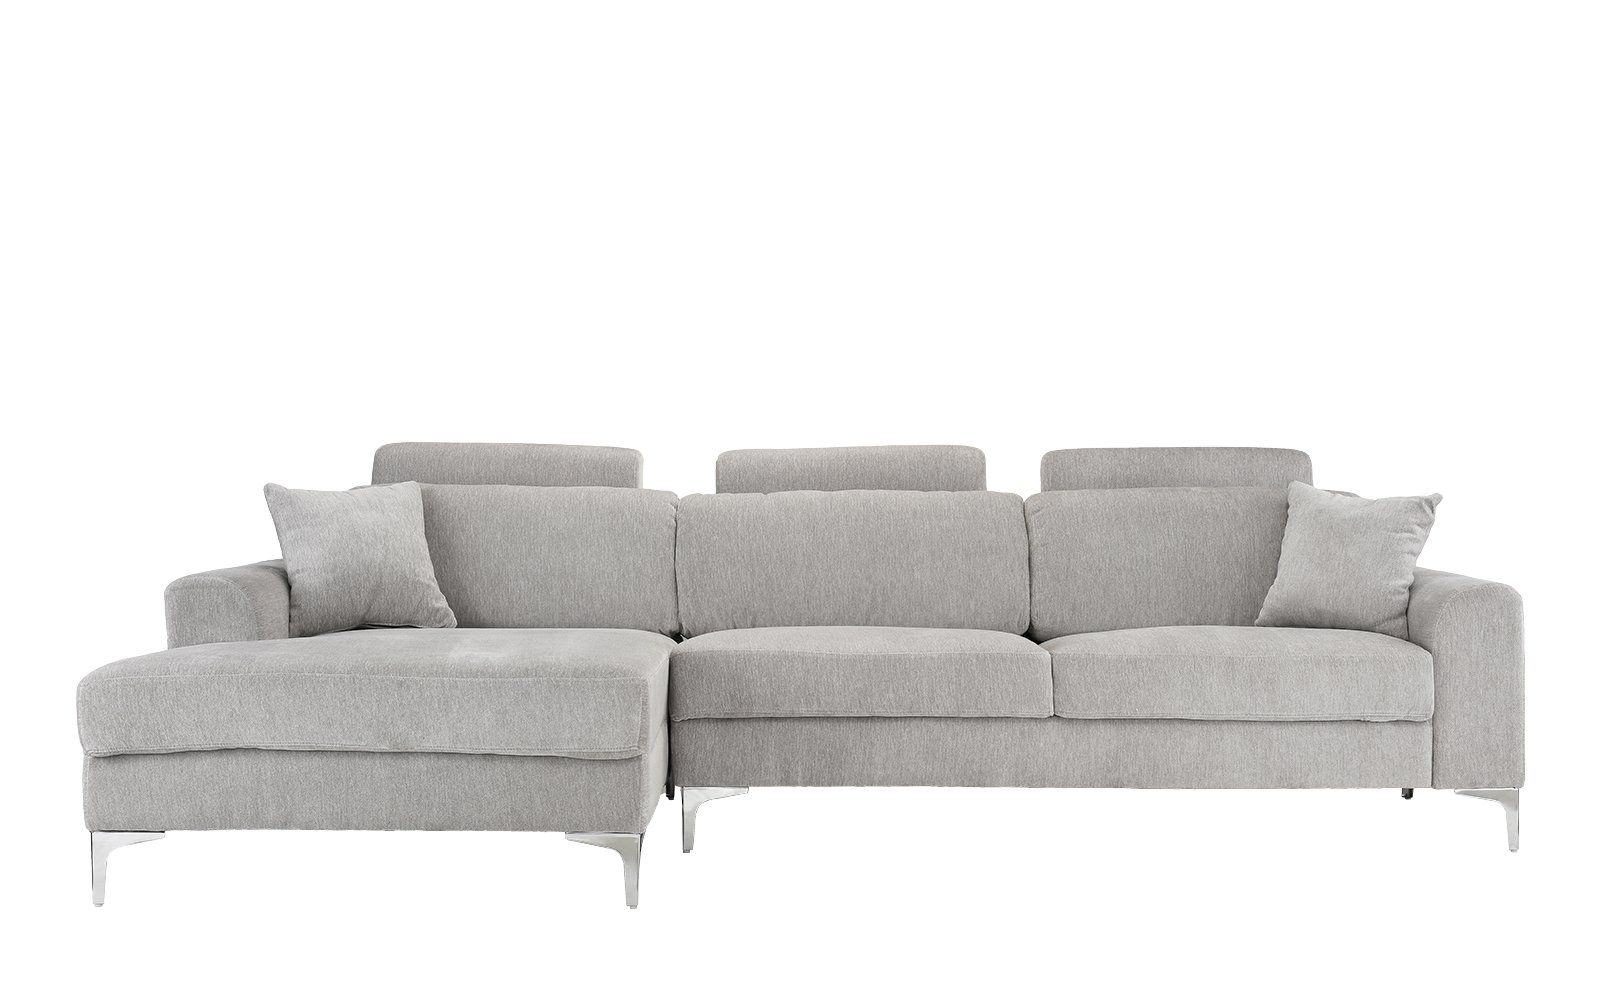 Kason Large Modern Linen Sectional Sofa | Products ...